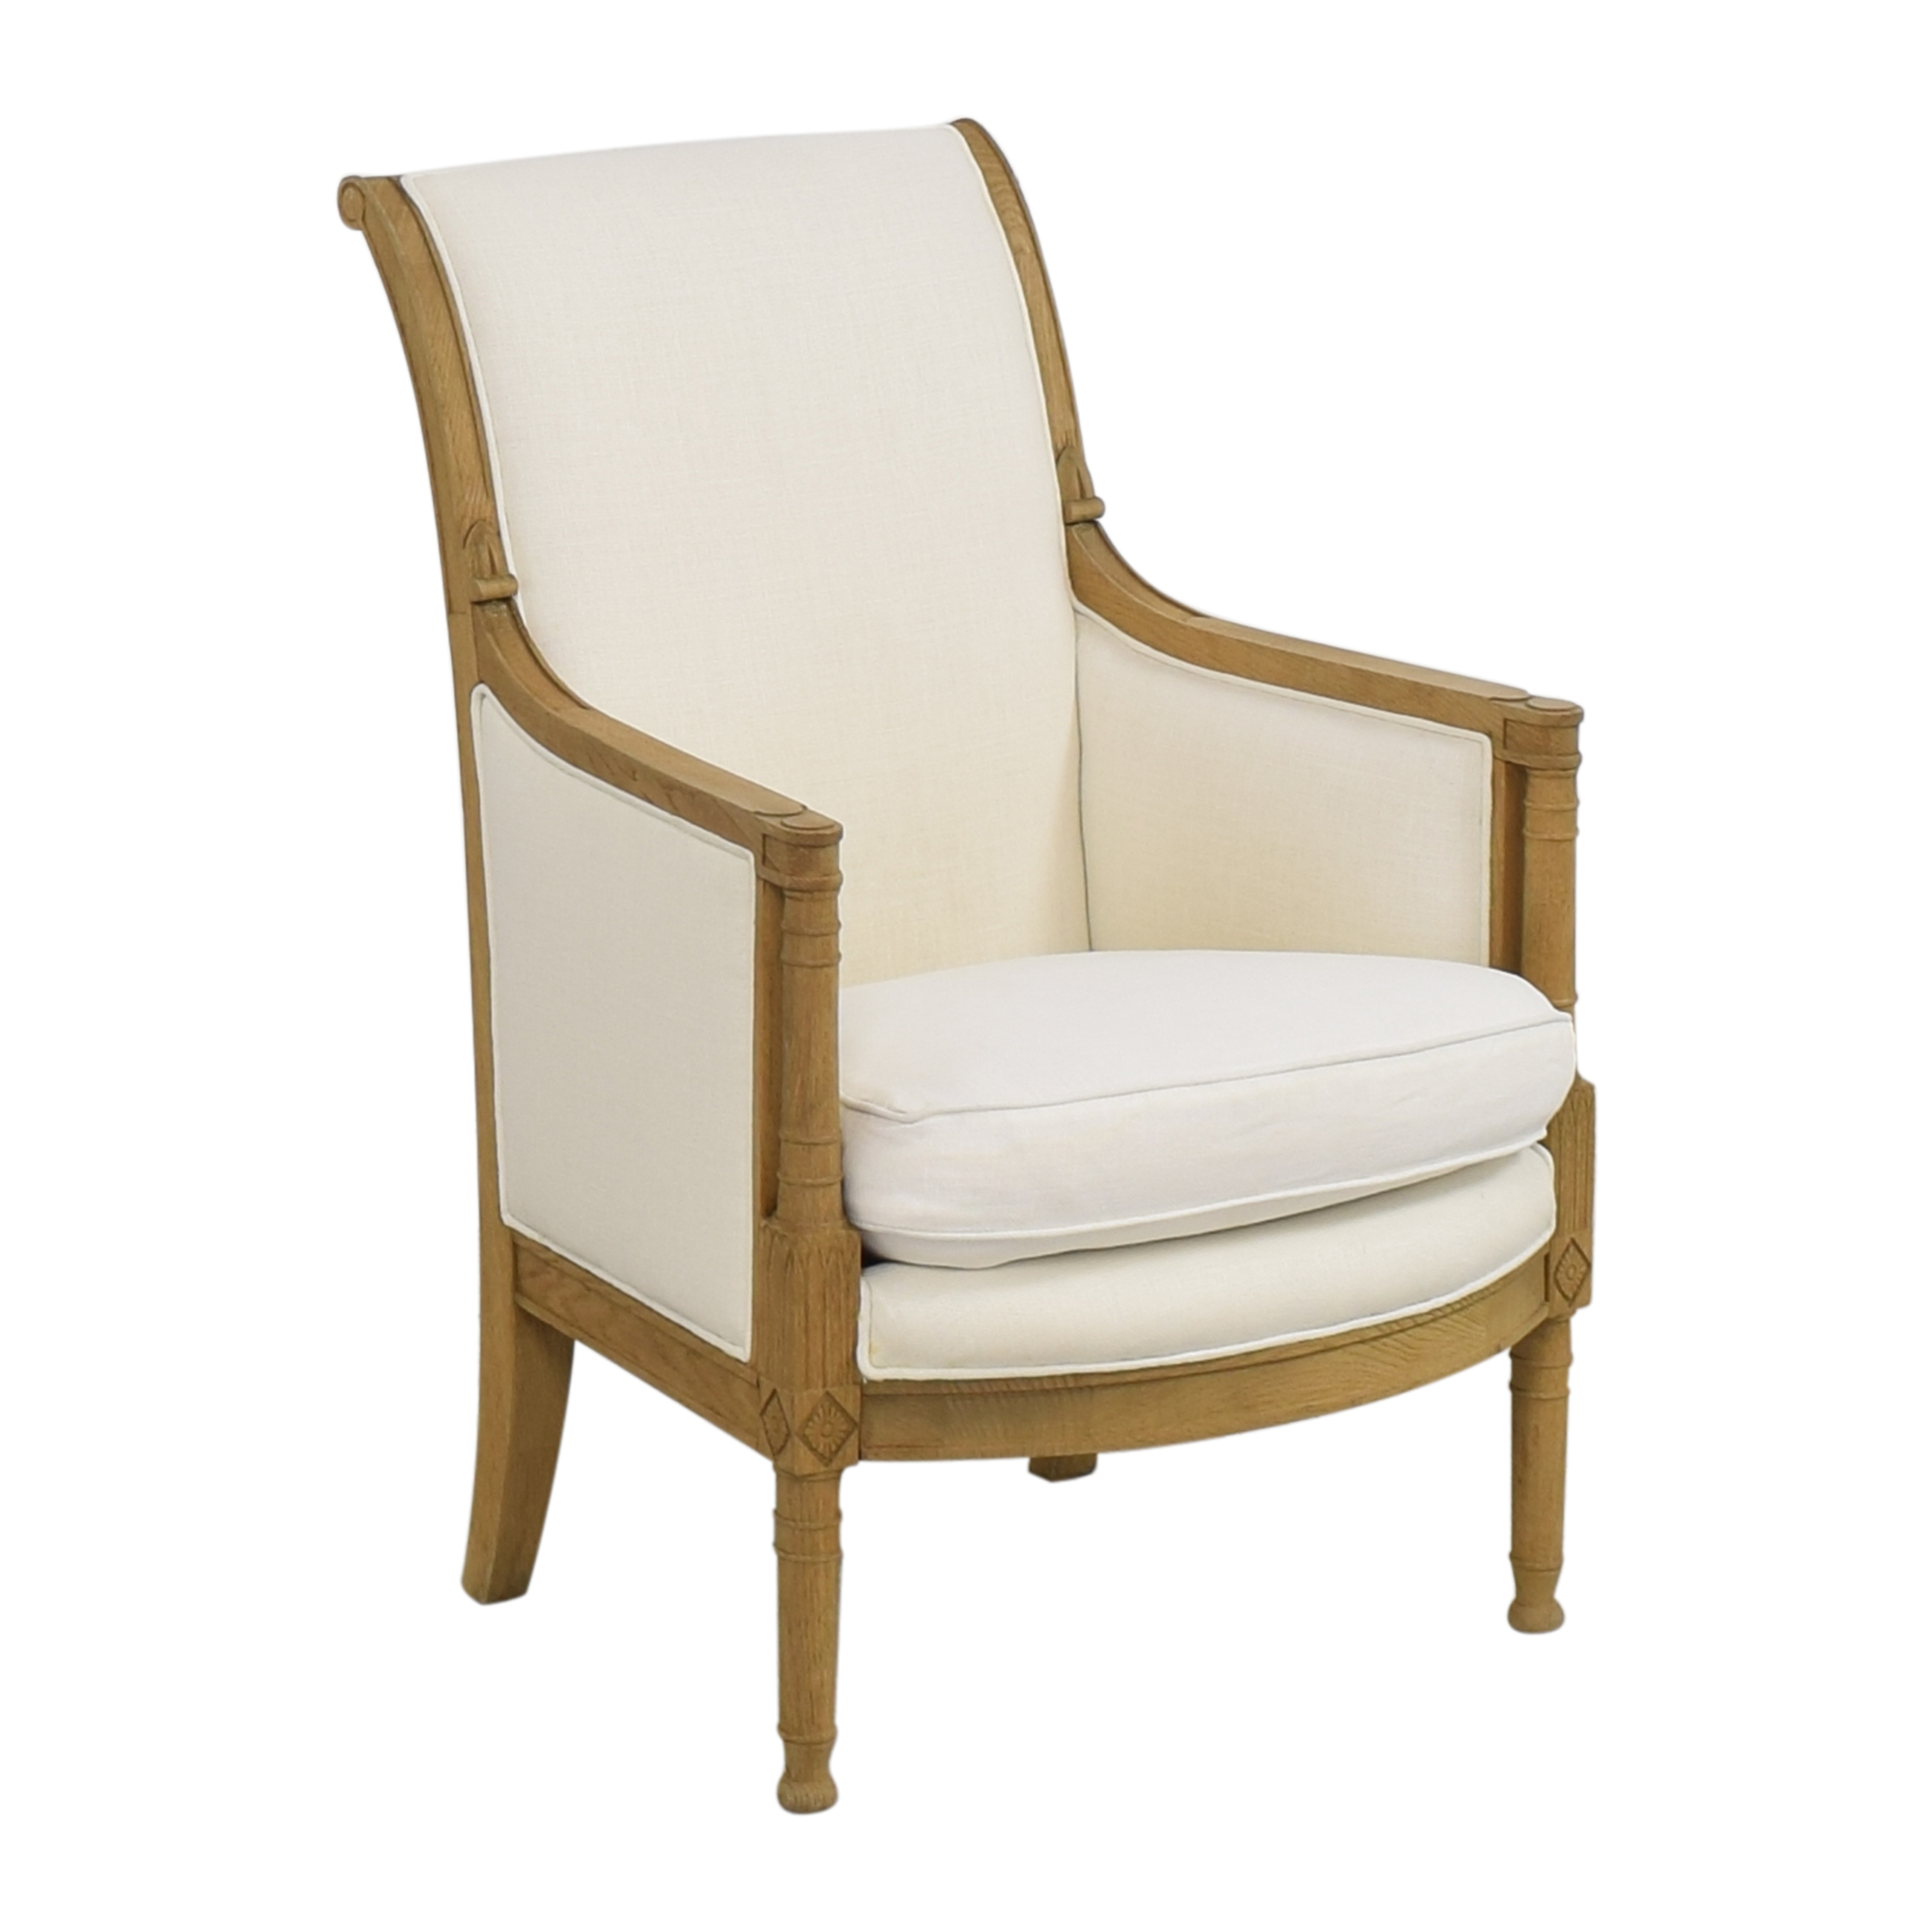 Restoration Hardware Restoration Hardware French Contemporary Chair for sale